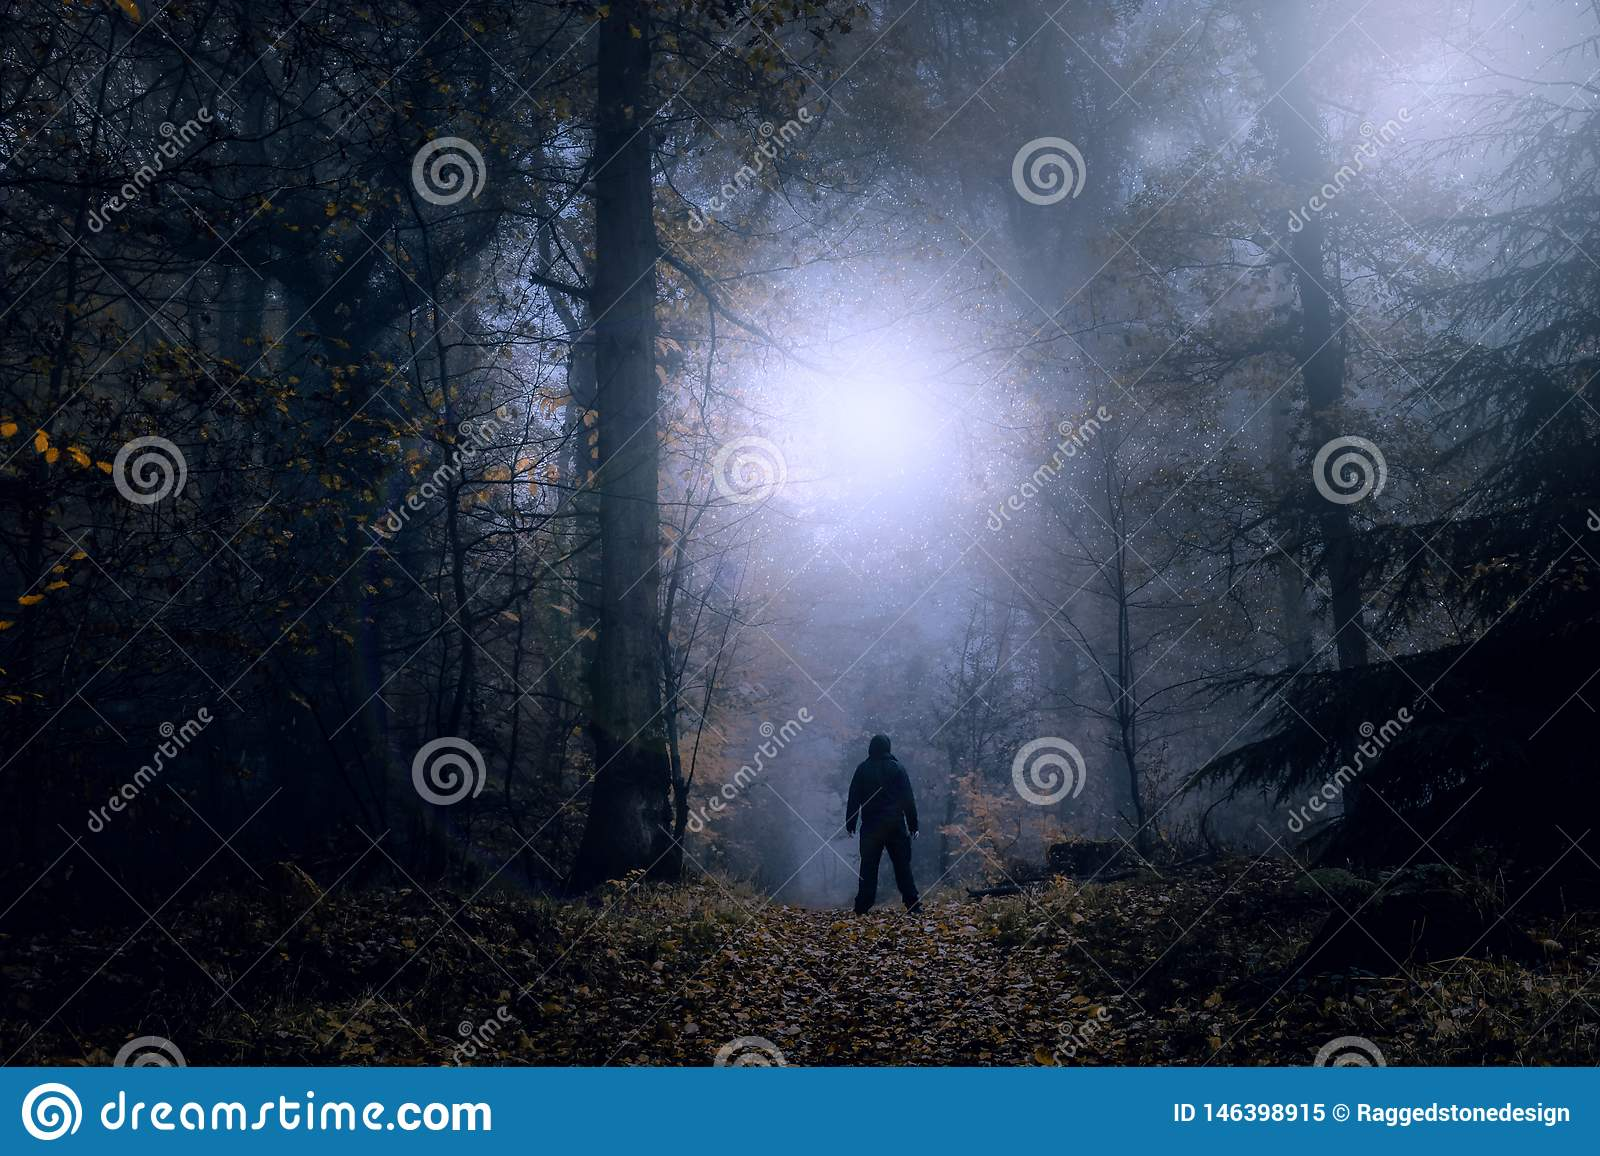 A mysterious concept edit. A lone figure standing on a forest path on a spooky misty night looking at lights in the sky. With a hi